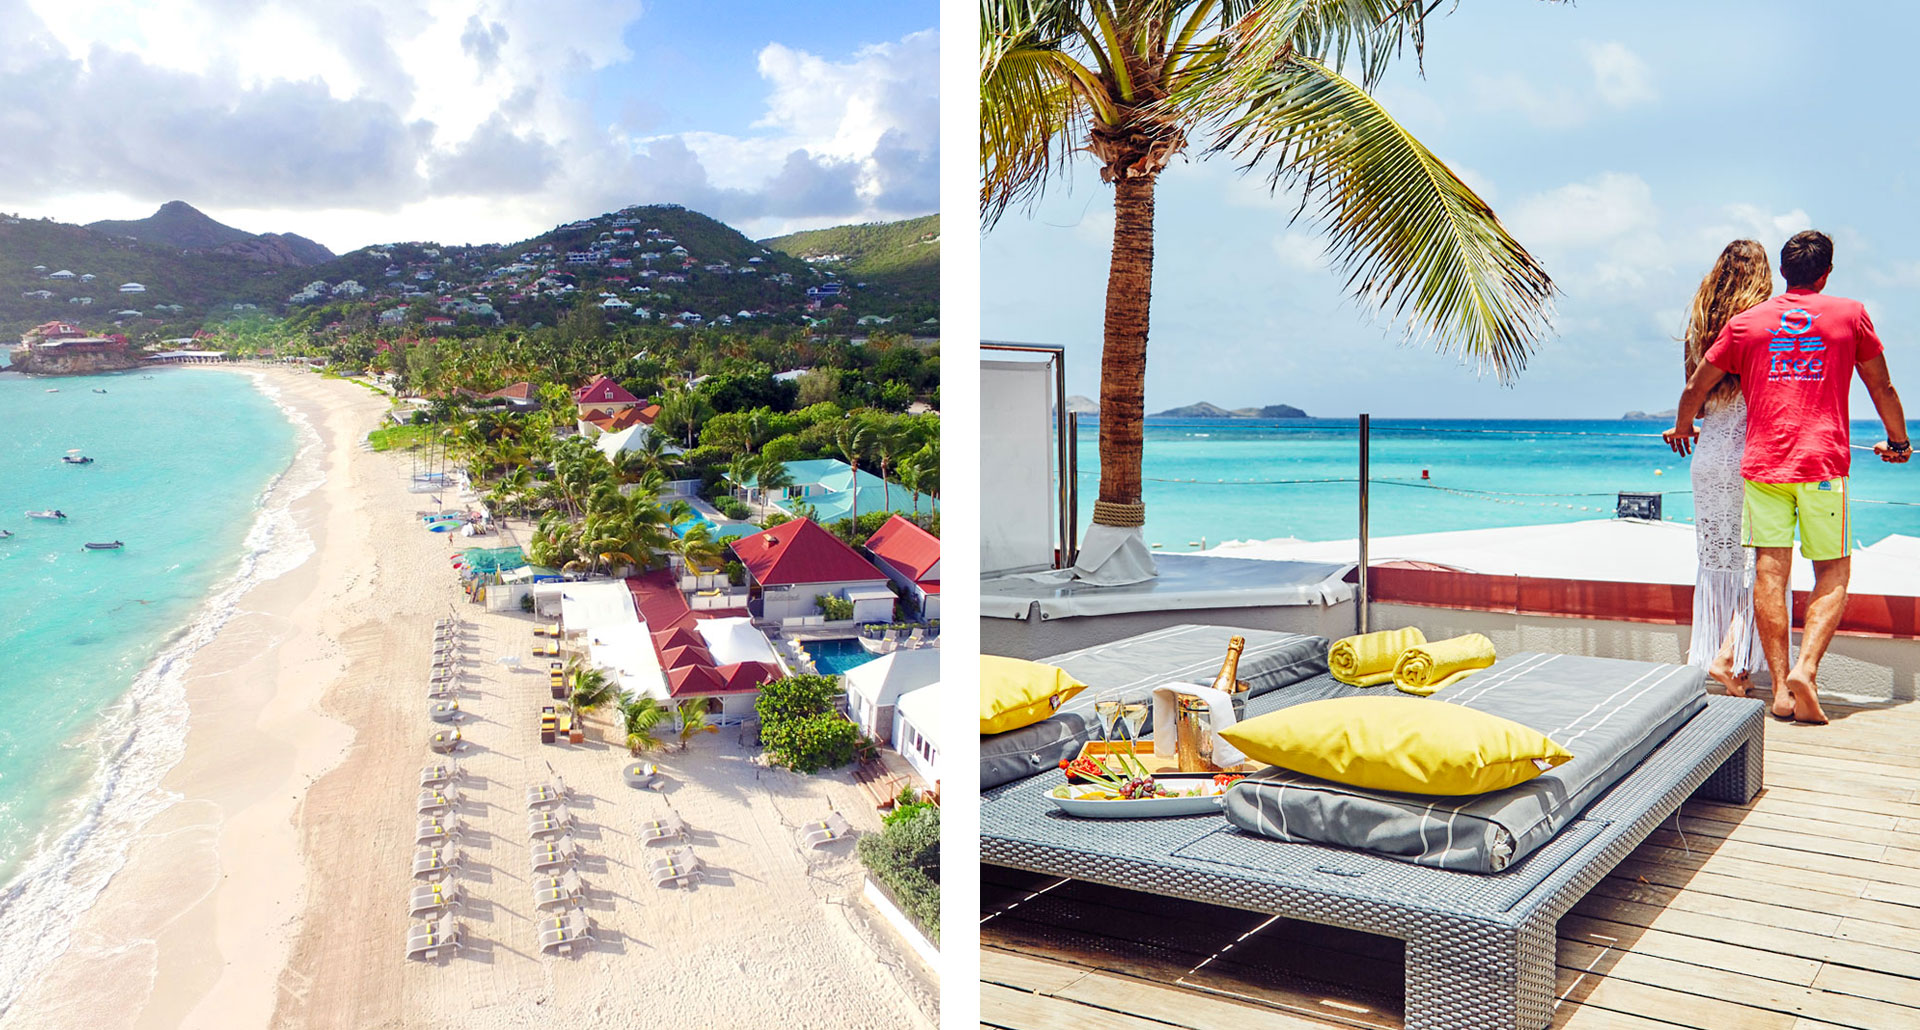 Pearl Hotel - boutique hotel in St. Barthelemy